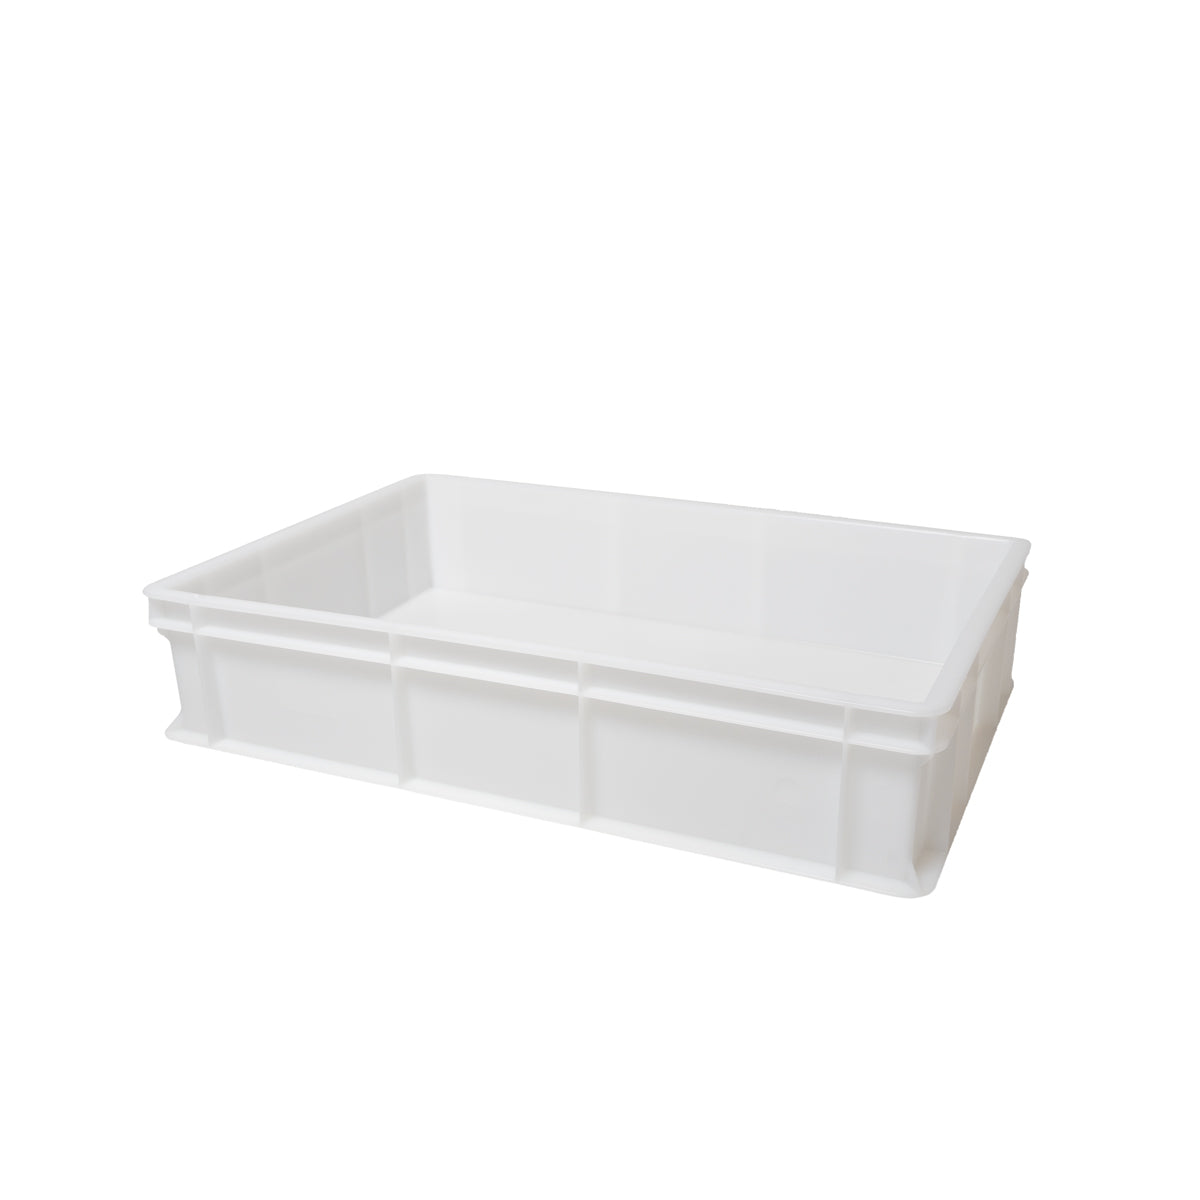 DOUGH CASES WITH SOLID BASE - 26L - Mabrook Hotel Supplies